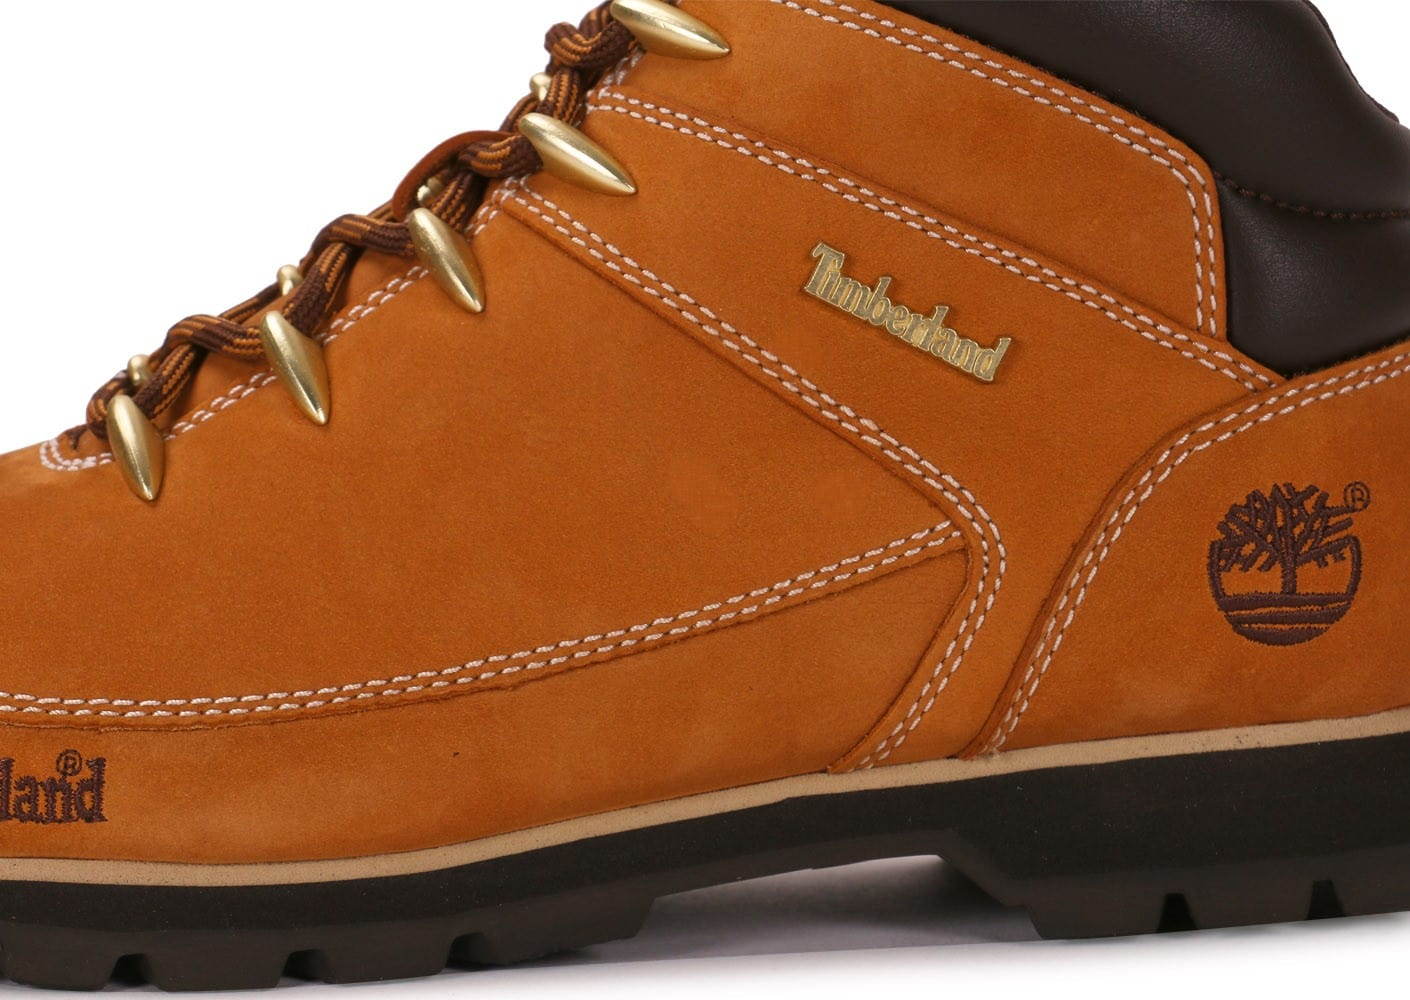 ... Chaussures Timberland Euro Sprint Camel vue dessus